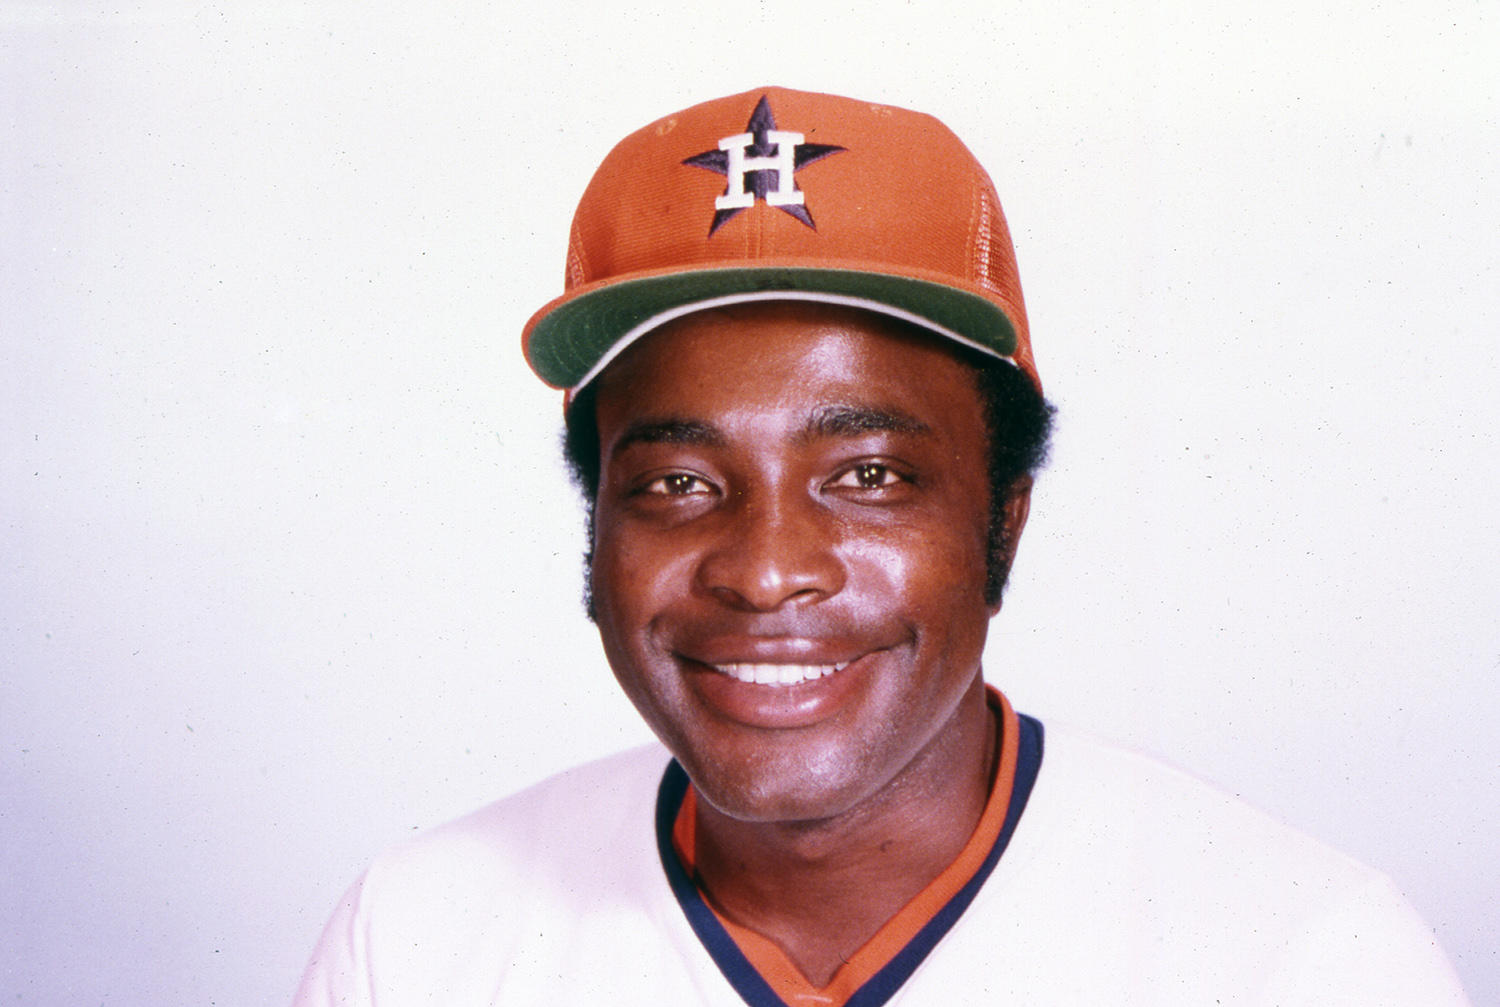 Morgan Returns To Astros As Free Agent Baseball Hall Of Fame Joe morgan's letter to hall of fame voters tried to appeal to a group whose opinions the hall clearly who's watching? baseball hall of fame